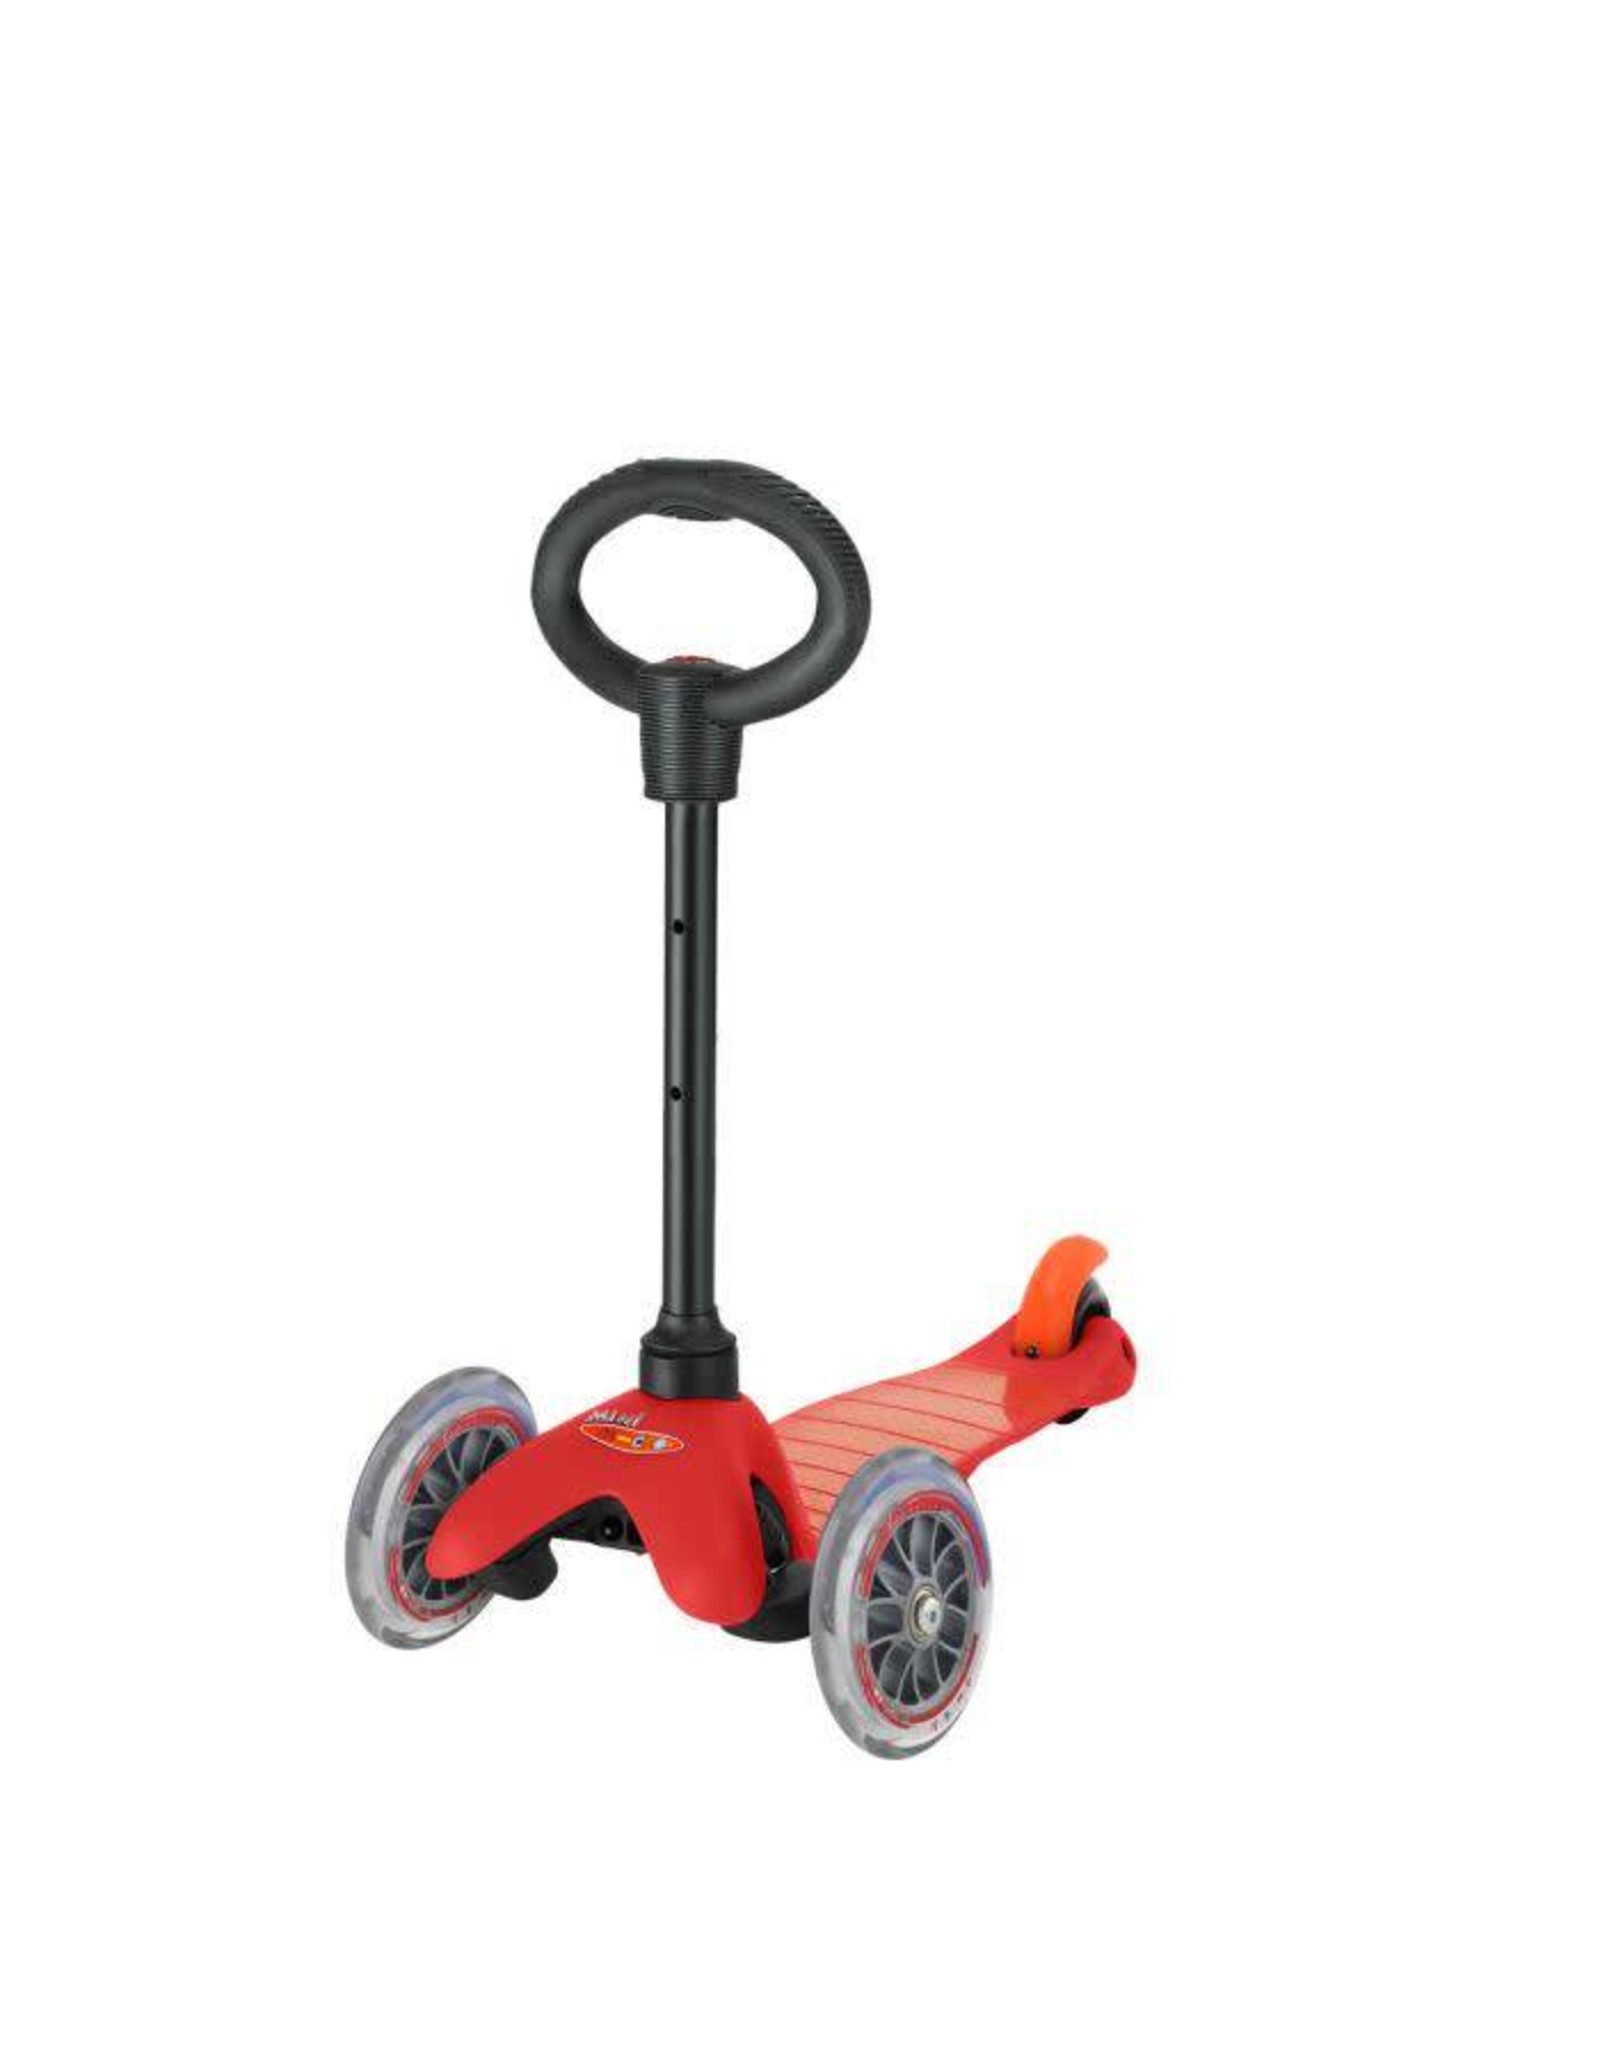 Micro Scooter Red 3in1 Mm0202 Black Grips